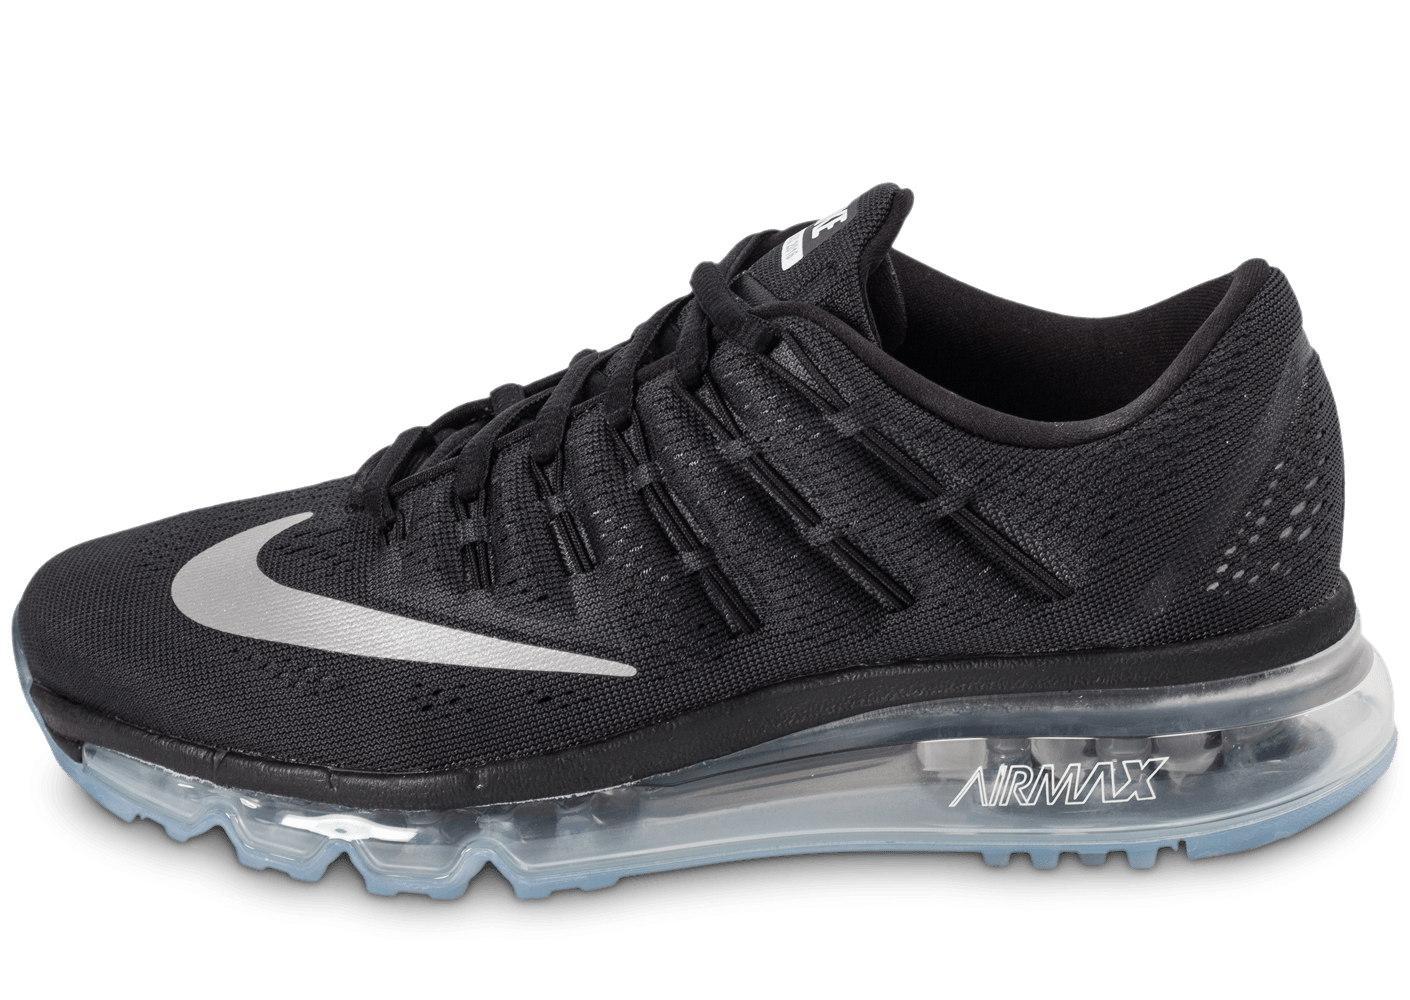 best service fd1b3 f4f86 Nike Air Max 2016 Junior noire - Chaussures Chaussures - Cha